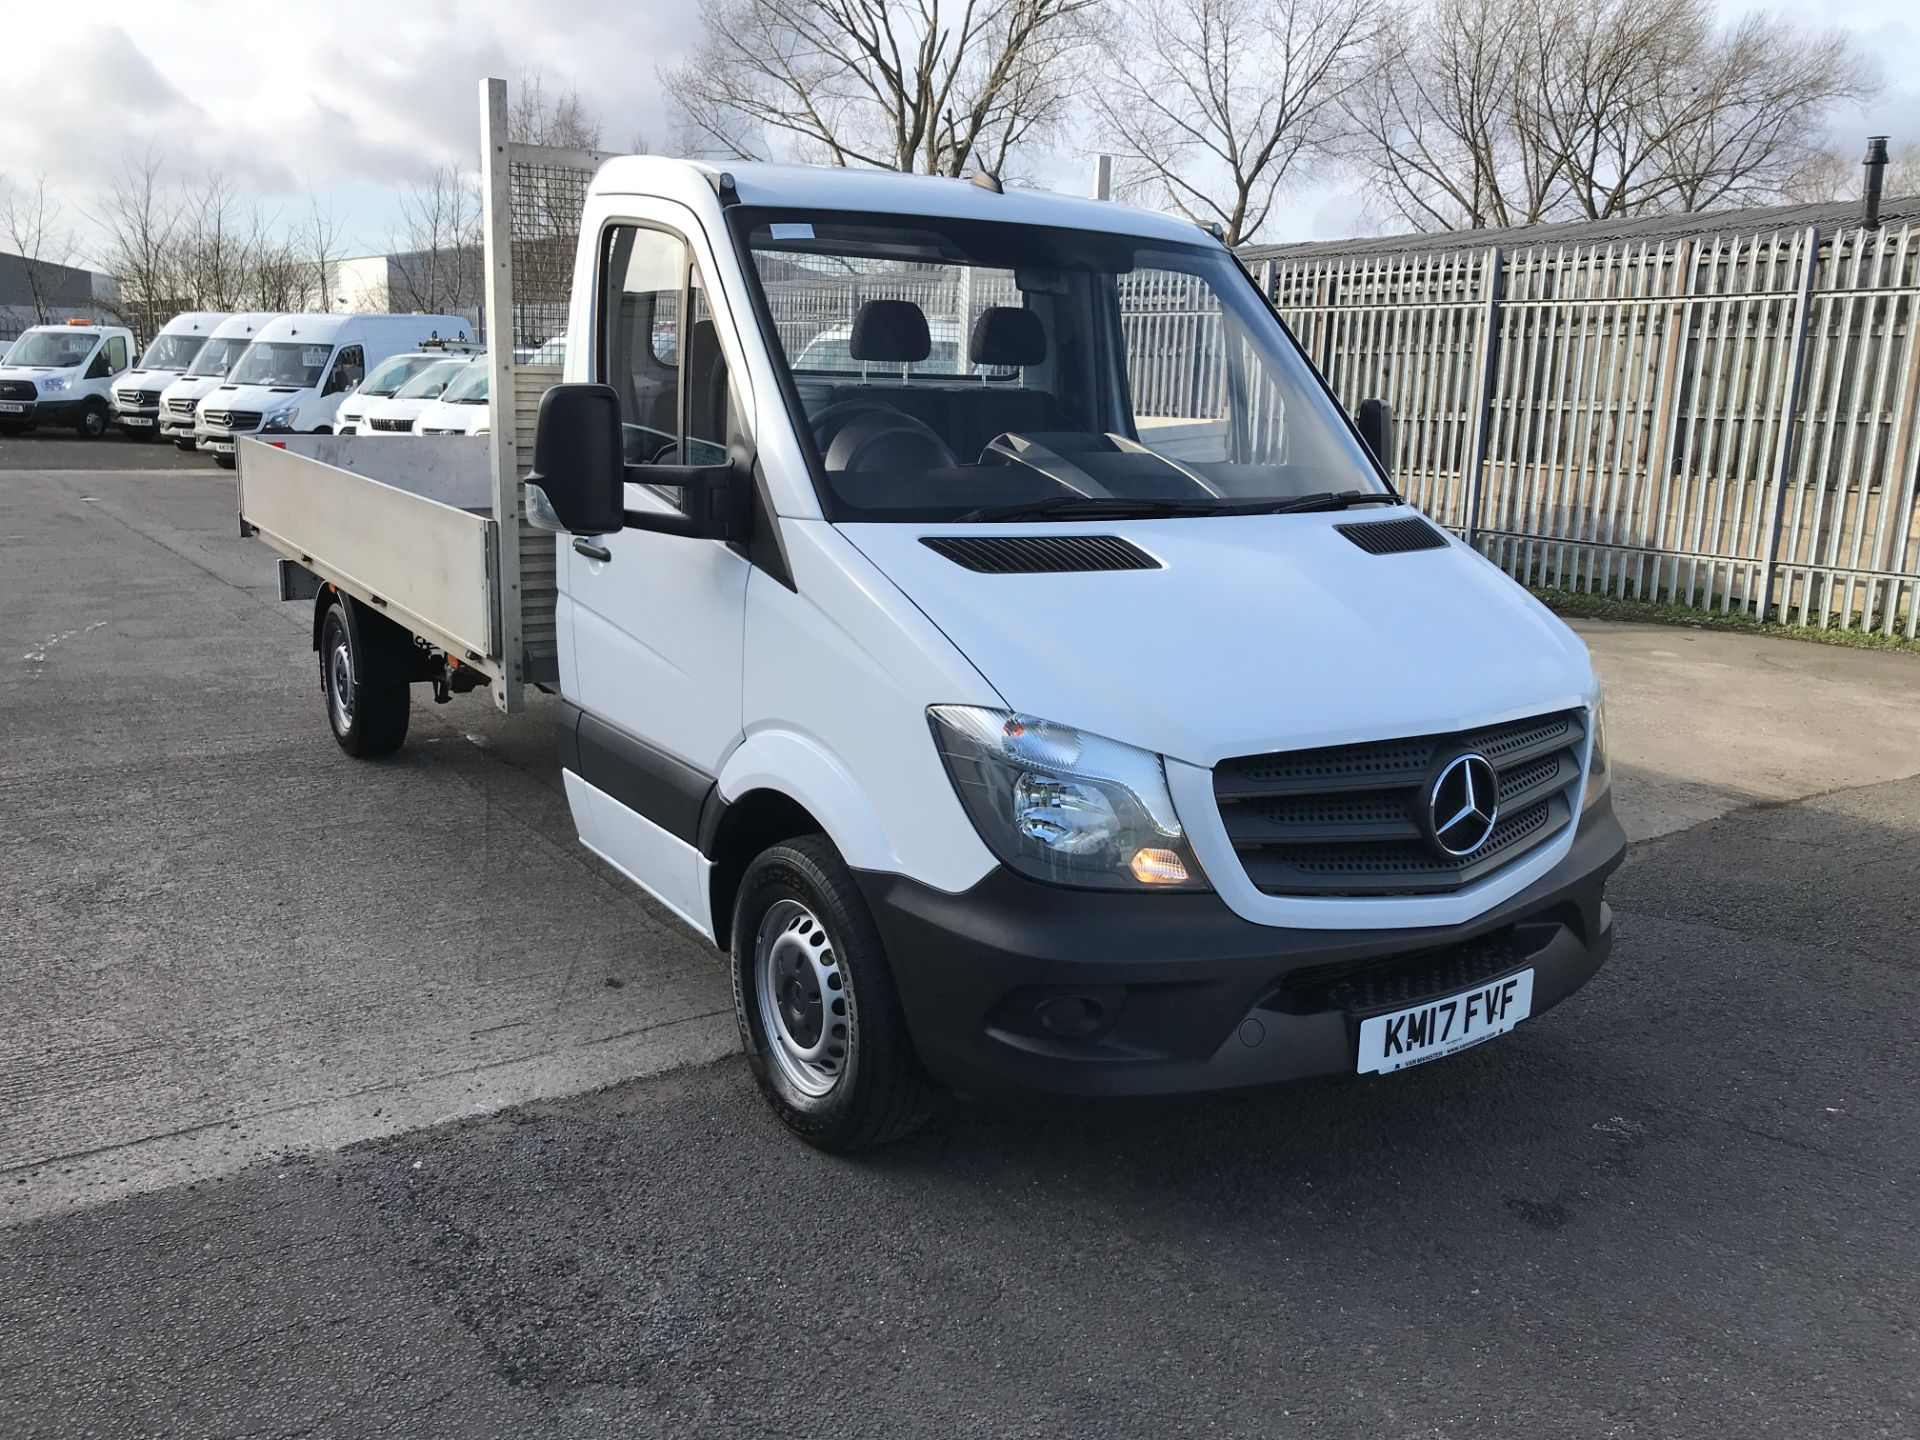 2017 Mercedes-Benz Sprinter 314CDI 13FT DROPSIDE 140PS EURO 6 (KM17FVF)